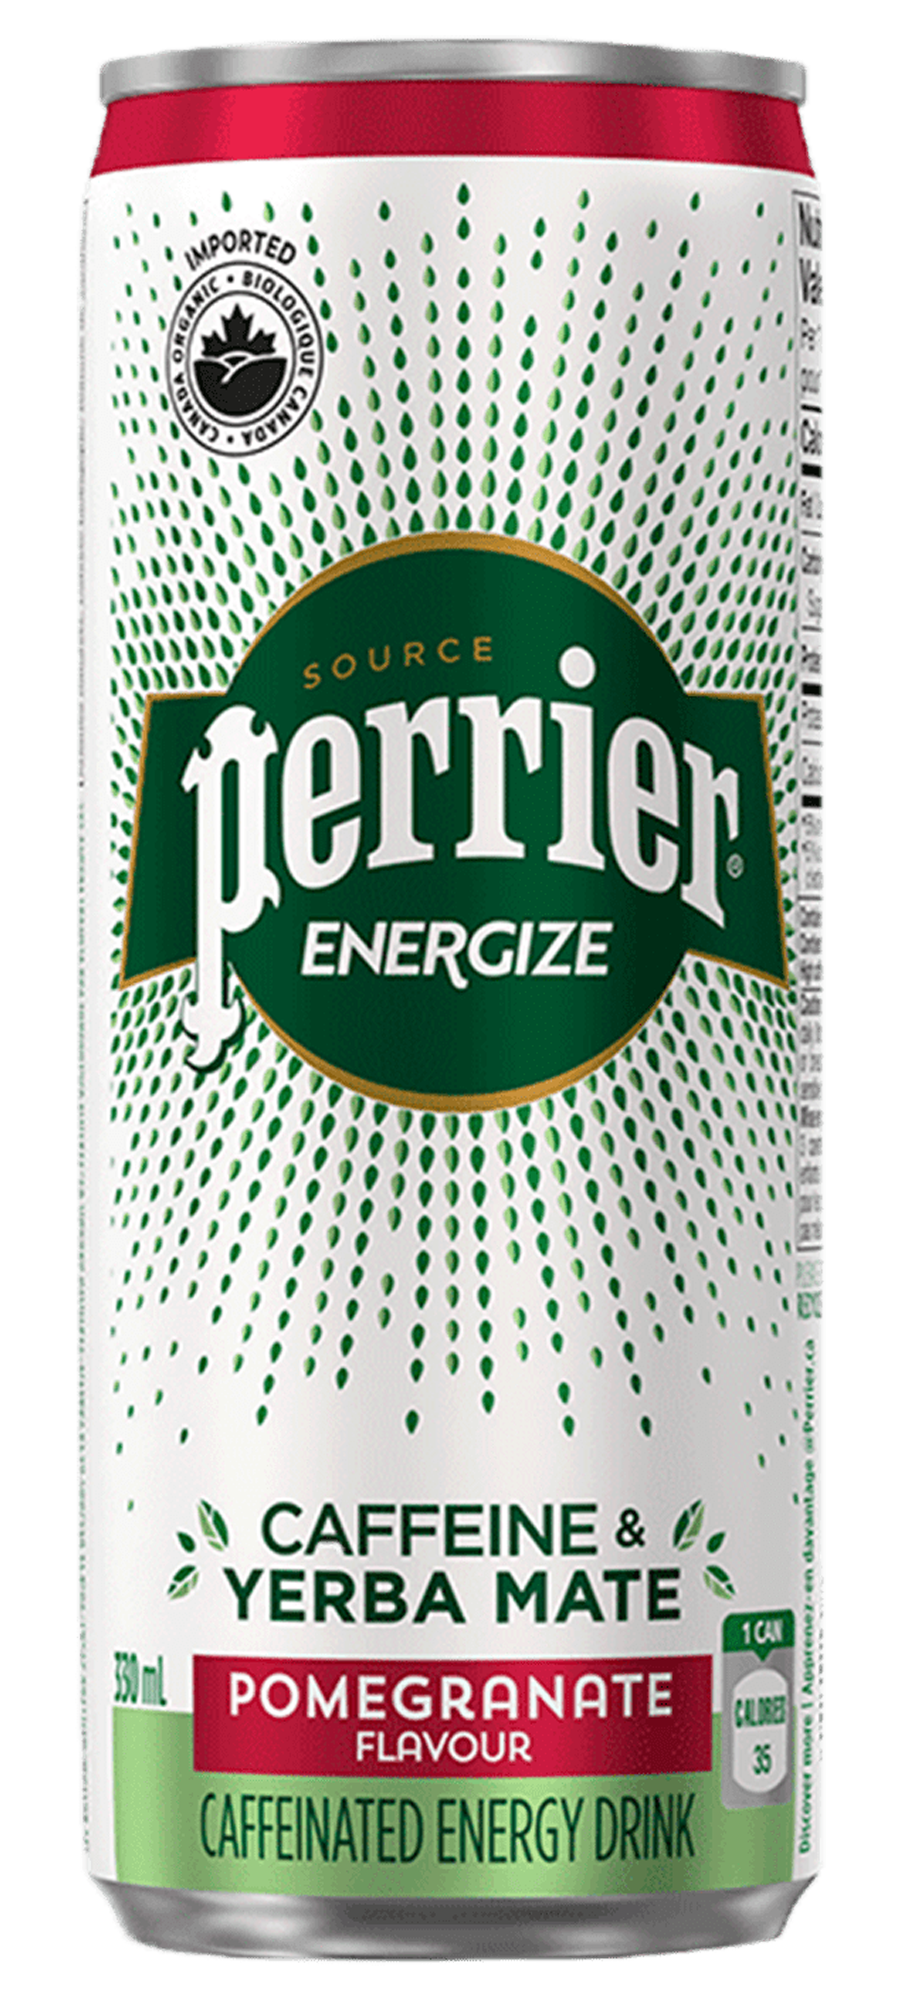 Perrier Energize Pomegranate